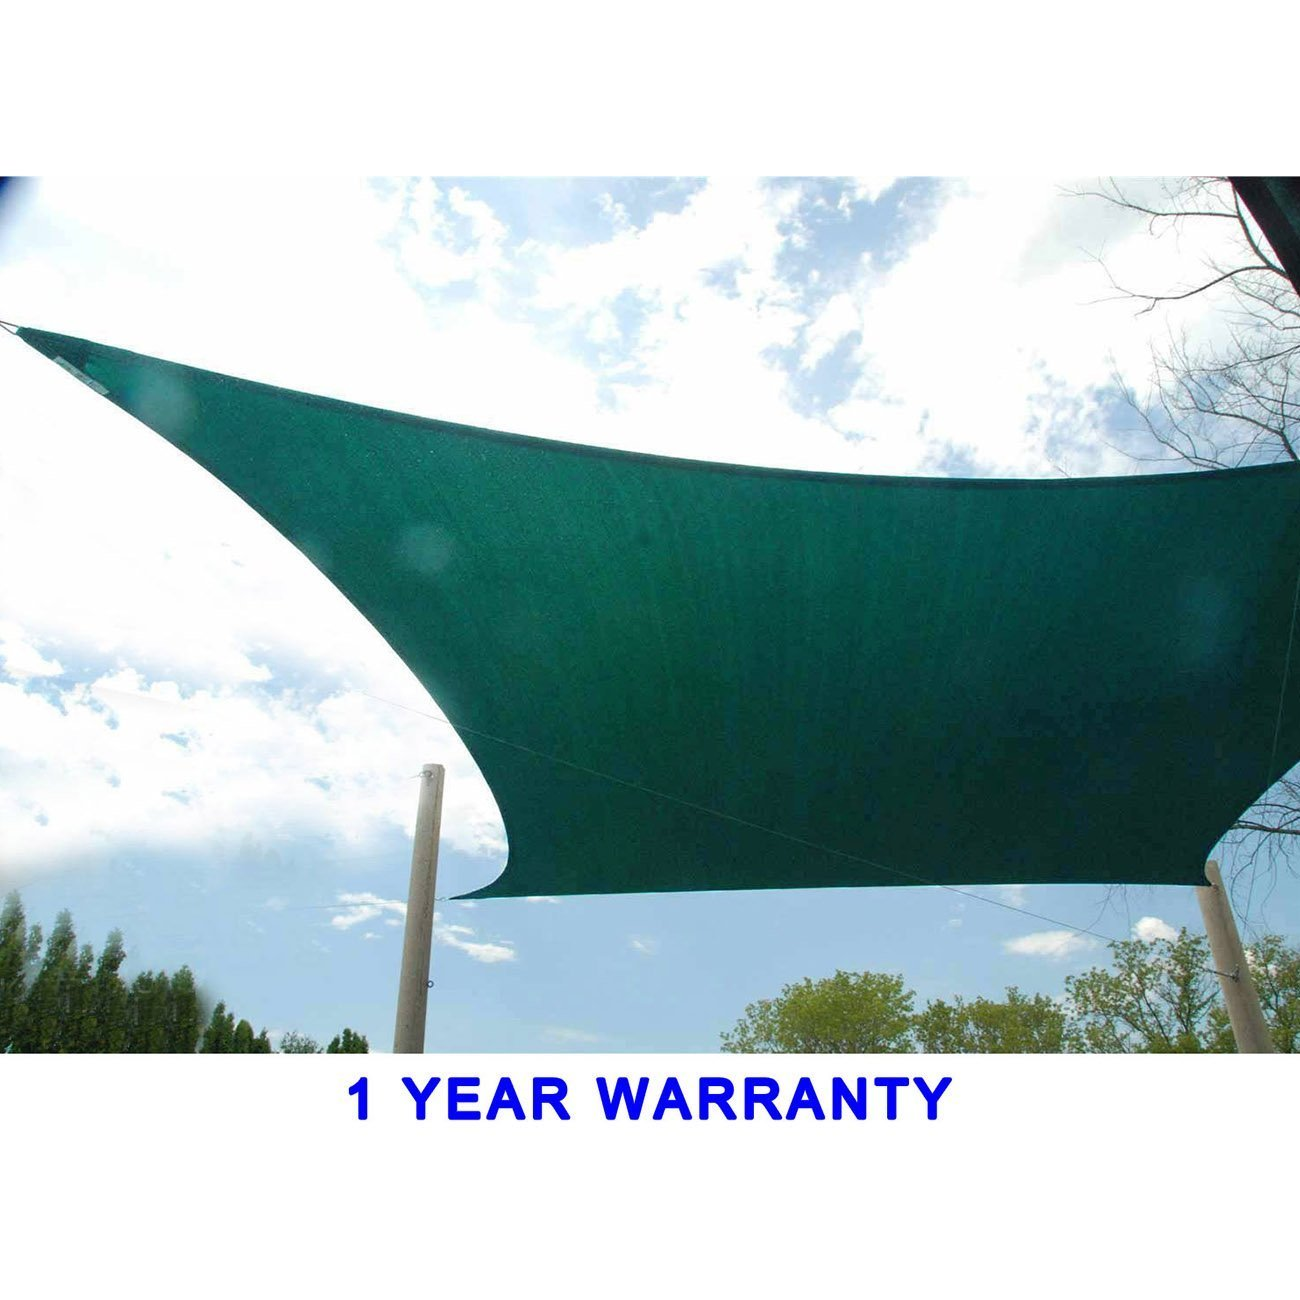 Jinguan Net 13 X 13 Ft 185G HDPE Square Sun Sail Shade Canopy UV Block Top  Outdoor Cover Patio Garden Dark Green